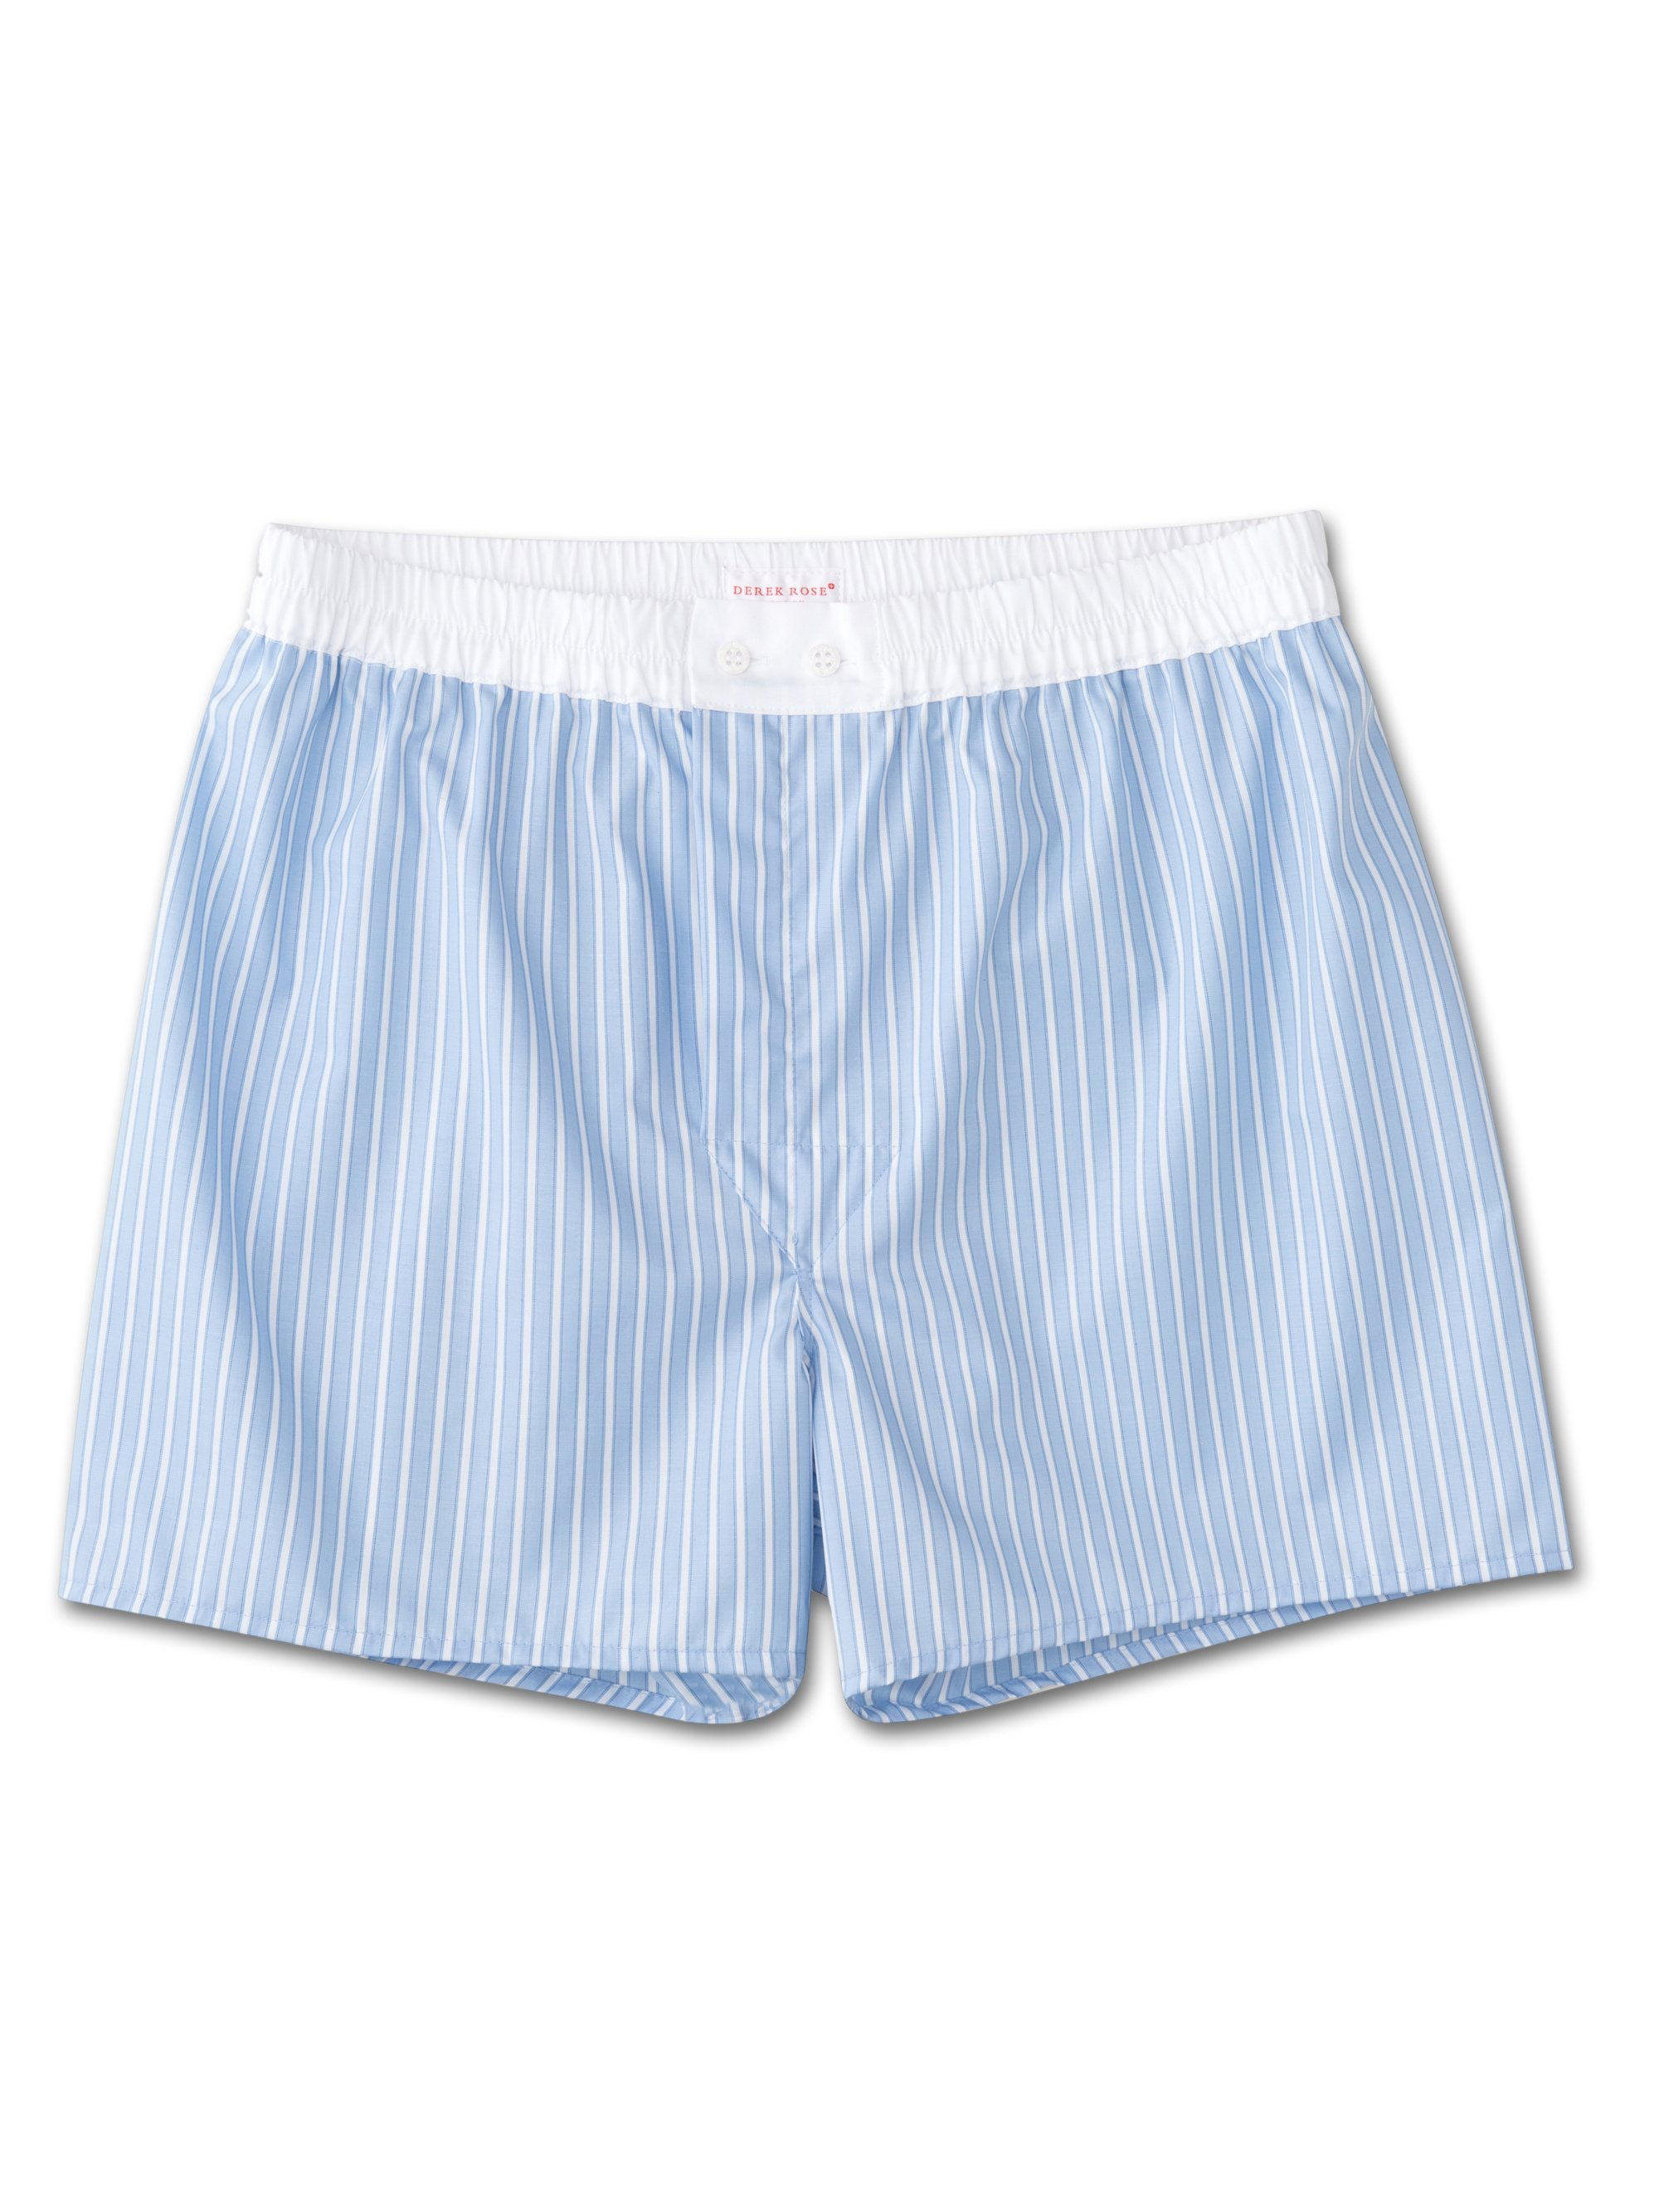 Derek Rose Men's Classic Fit Boxer Shorts — Jermyn Pure Cotton Stripe Blue White